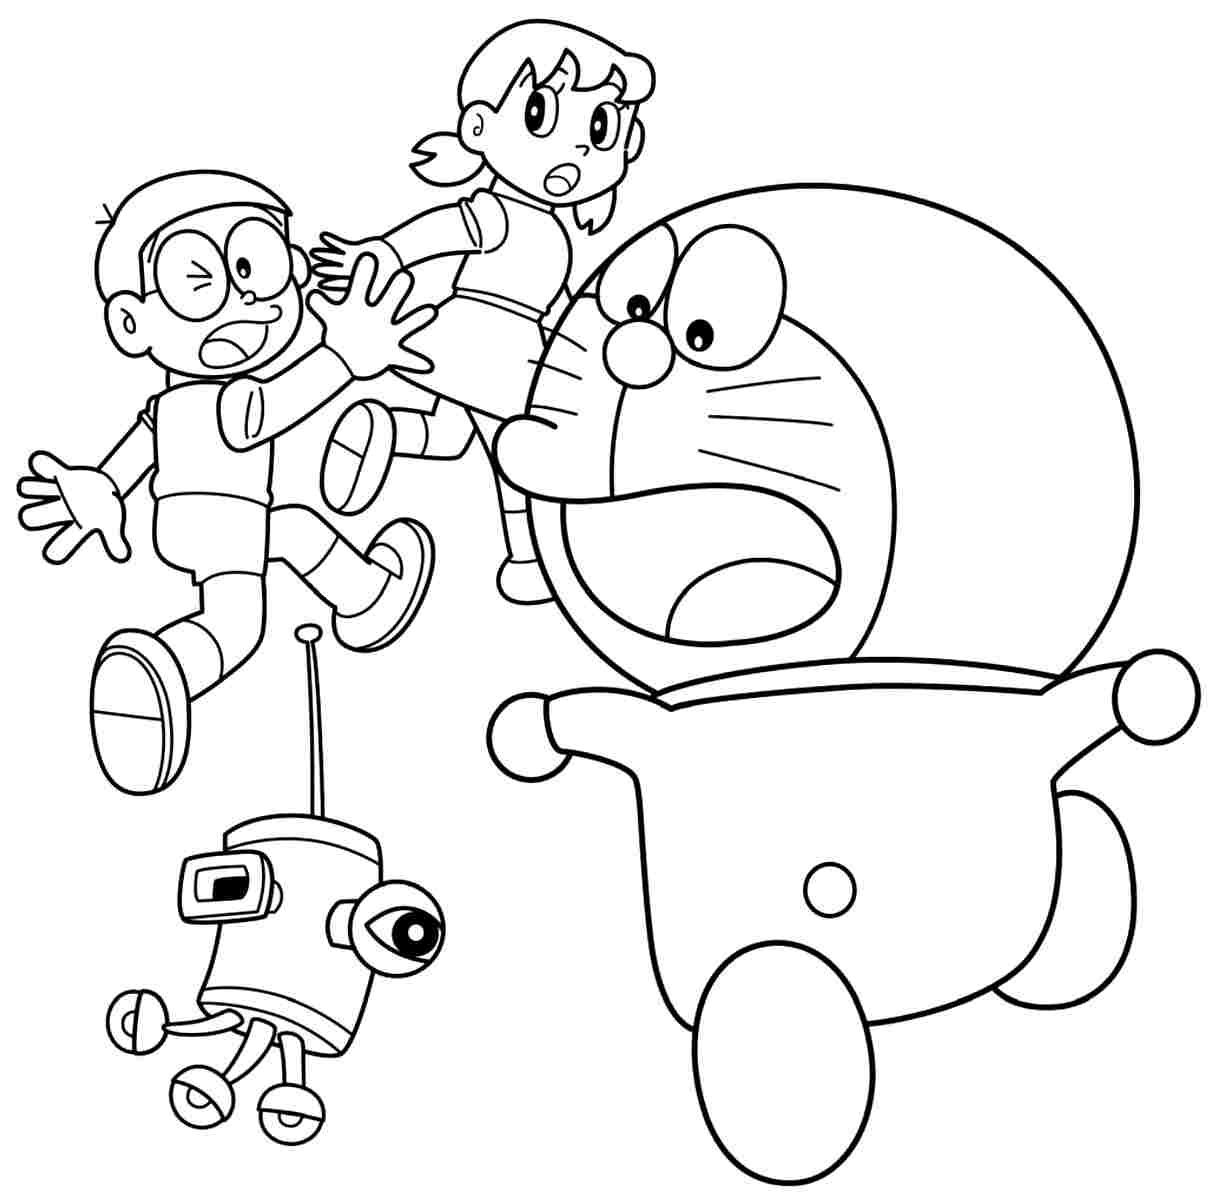 Doraemon coloring games online - Doraemon And Friends Coloring Pages 7